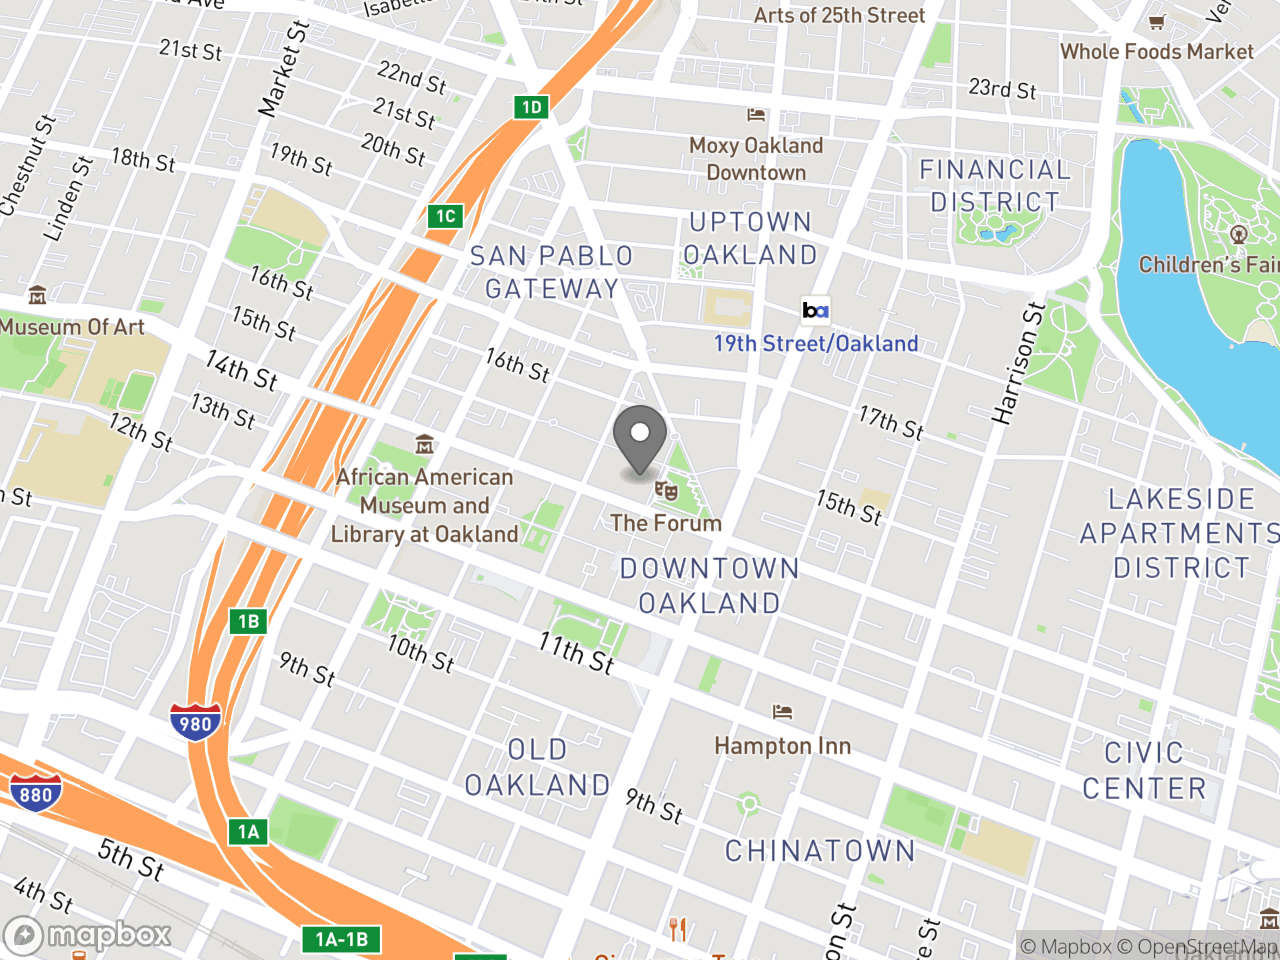 Map location for Soft Story Retrofit Workshop - For Property Owners & Tenants, located at 1 Frank H Ogawa Plaza in Oakland, CA 94612